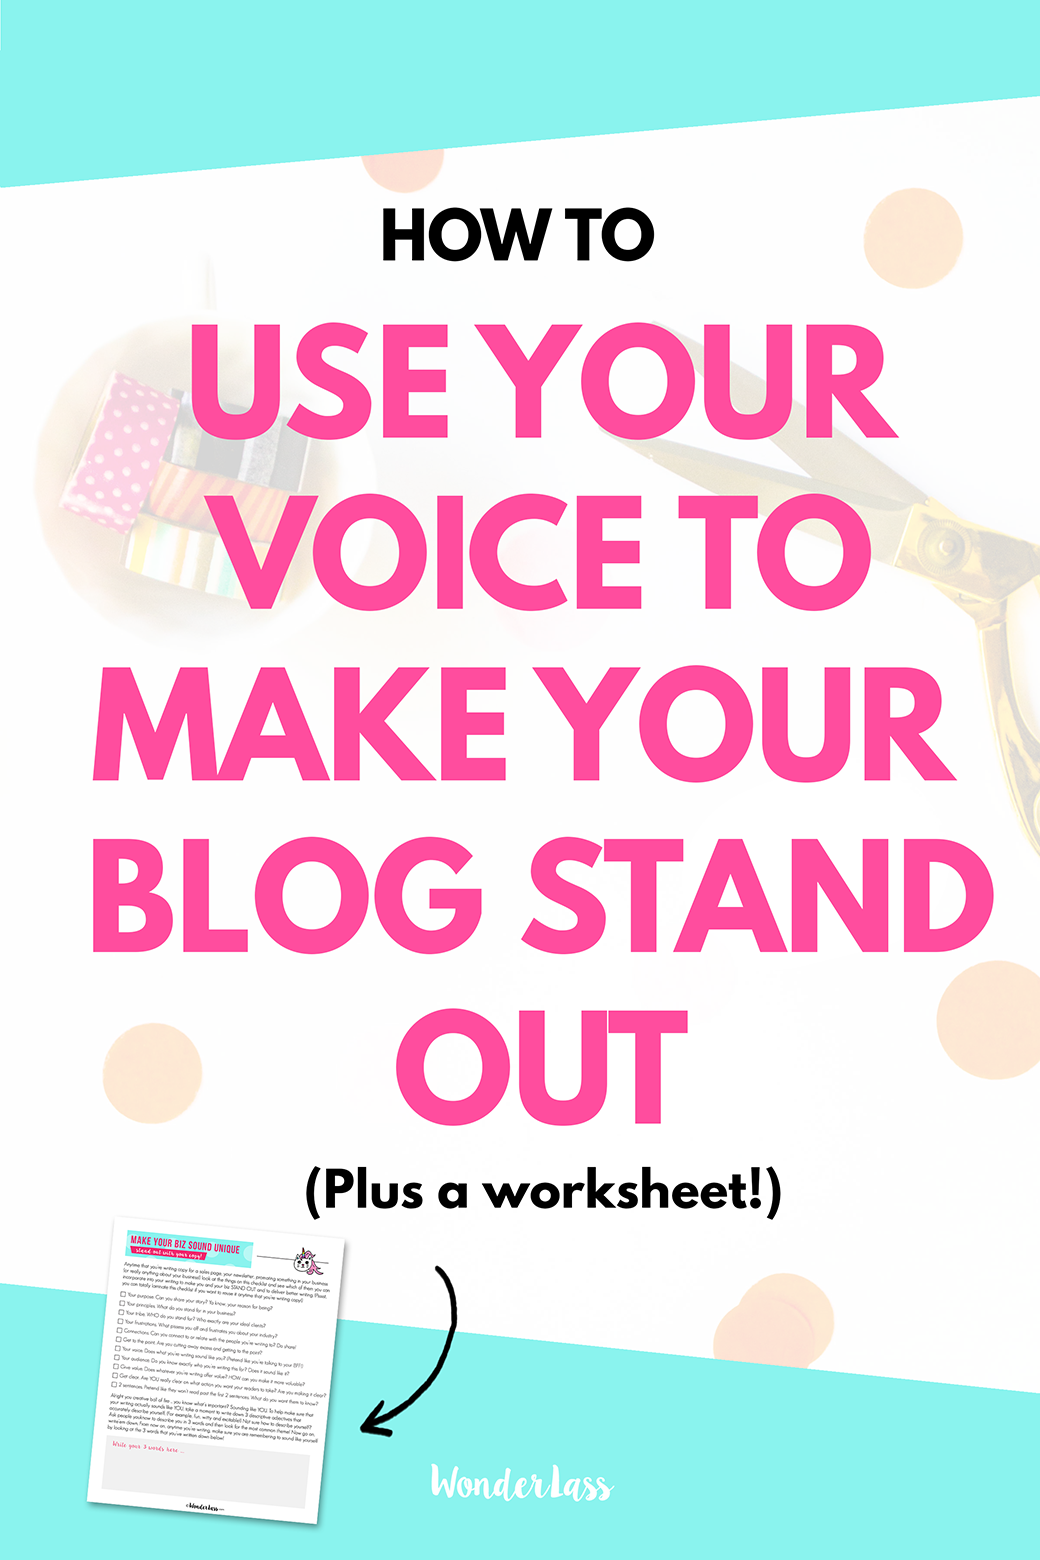 Click through to learn how to use your voice to make your blog stand out!